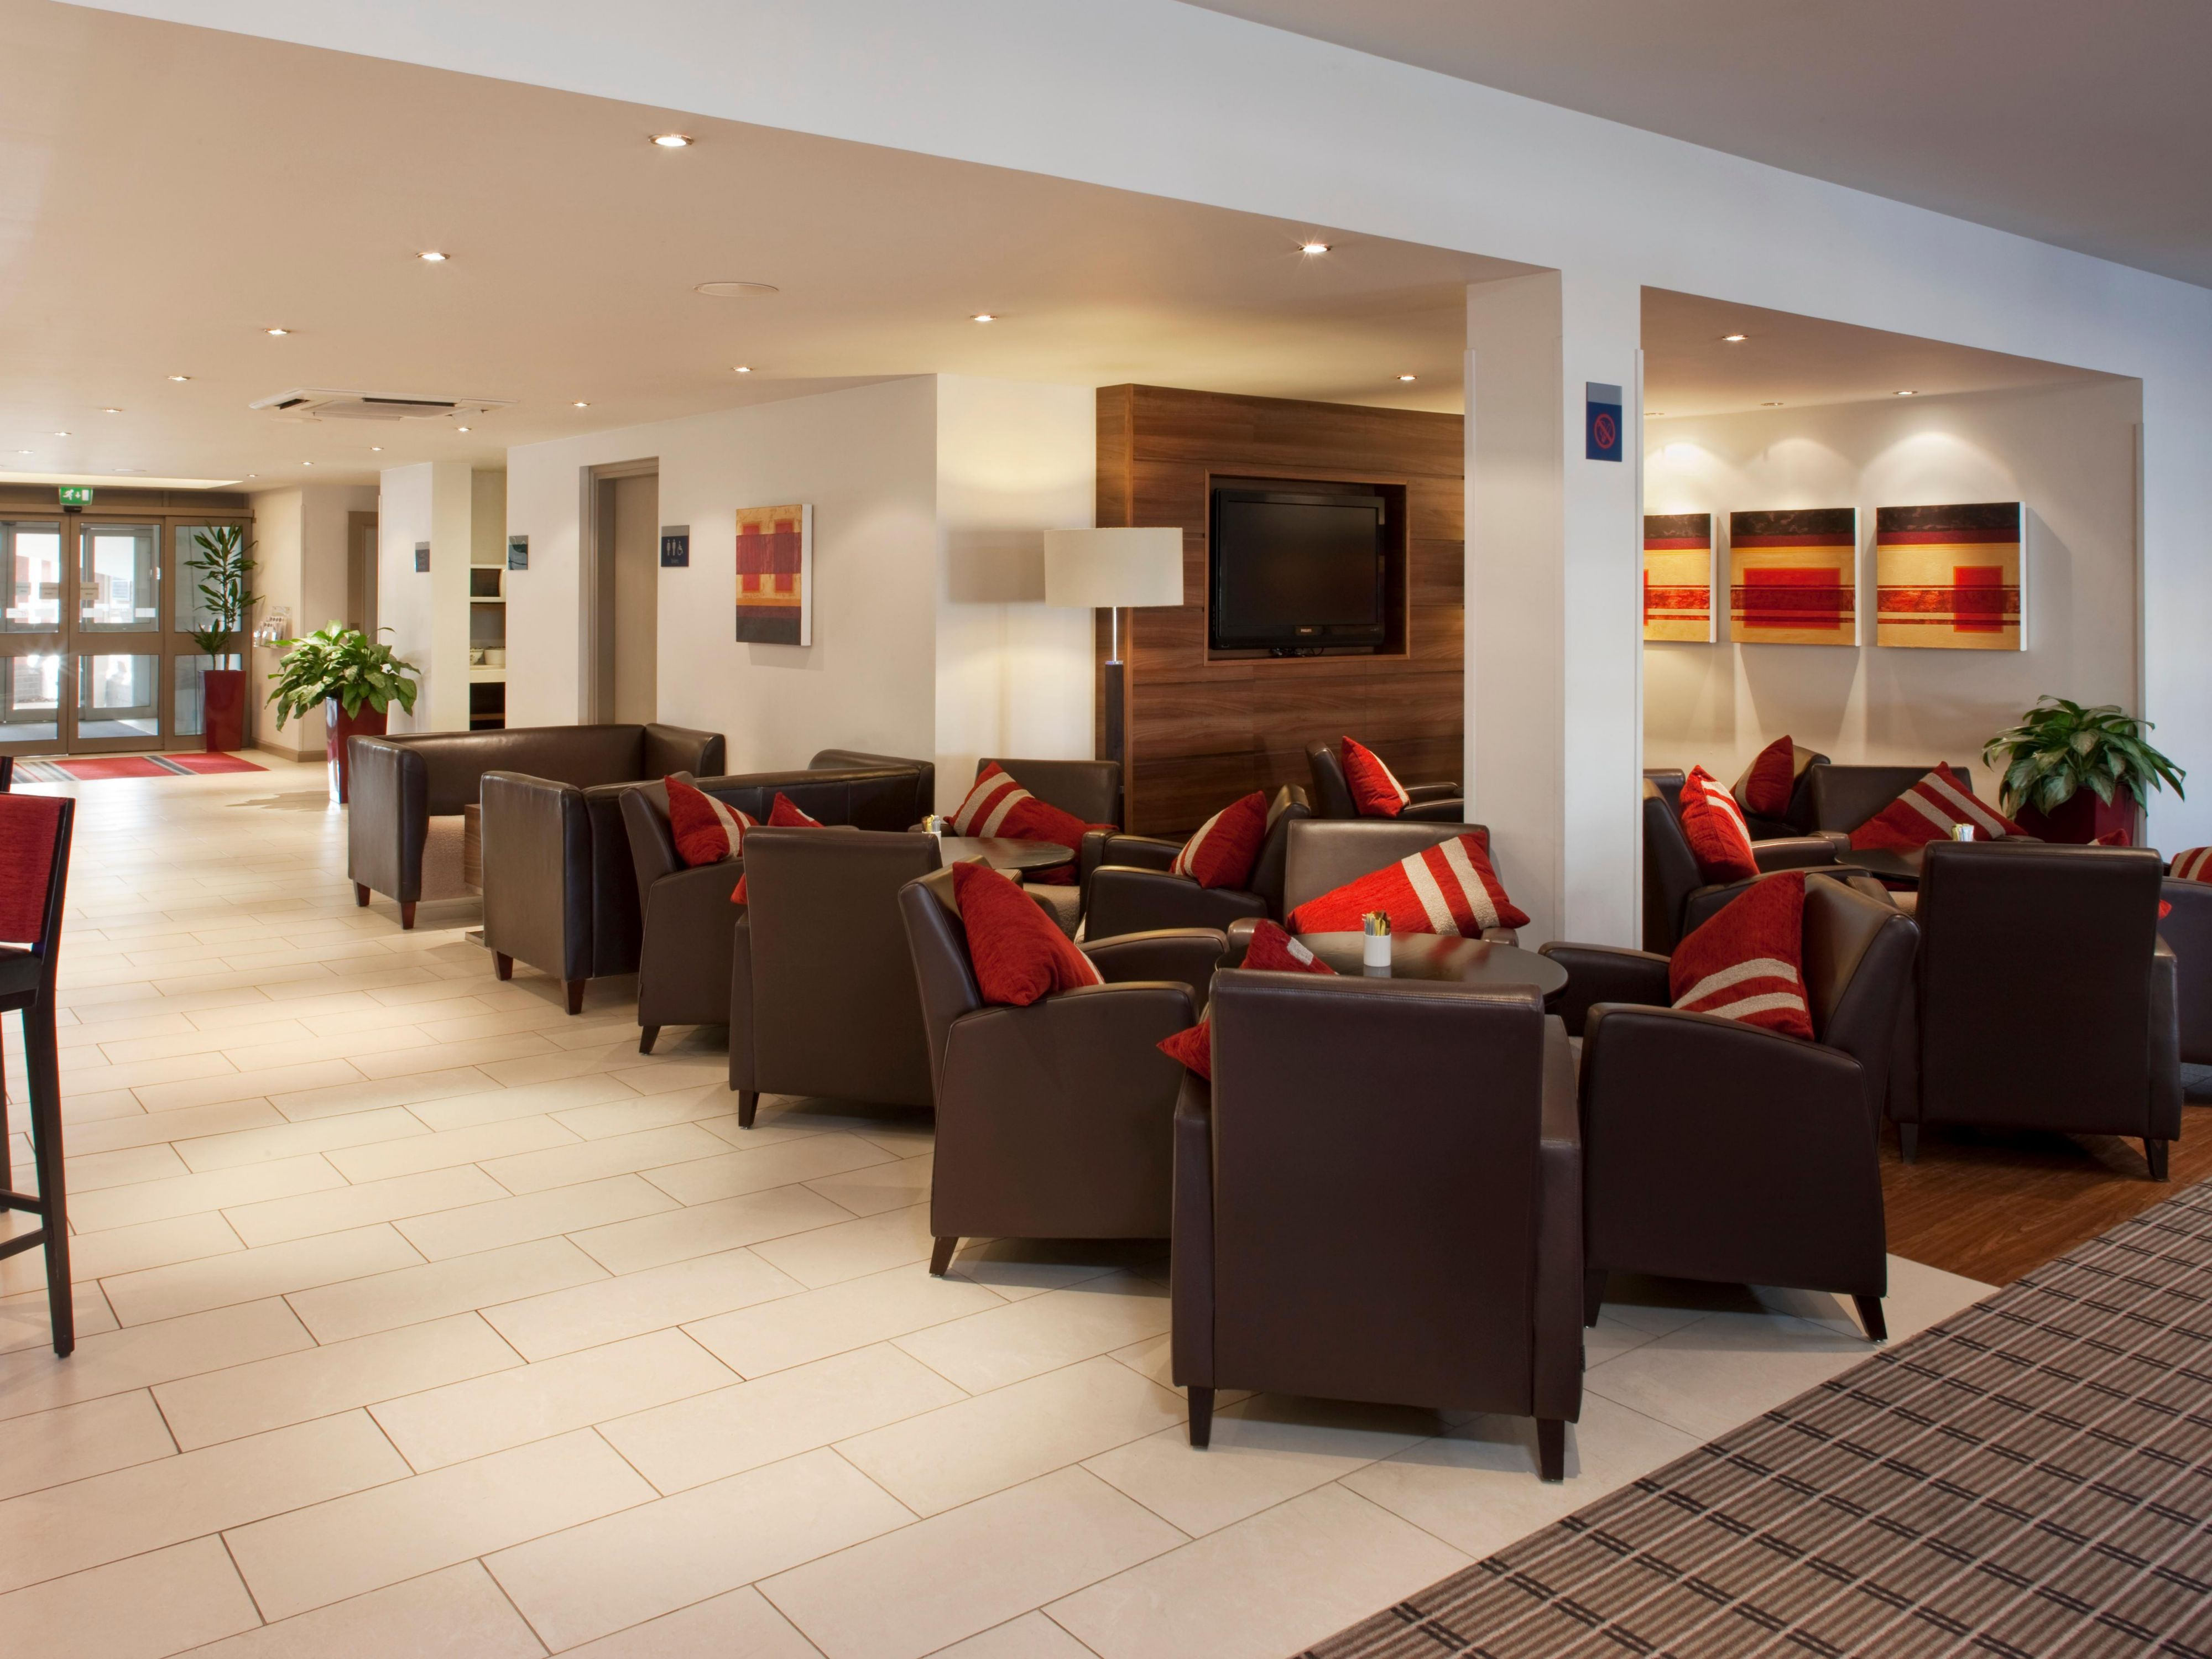 Relax in the lounge at our Holiday Inn Express hotel in Bristol